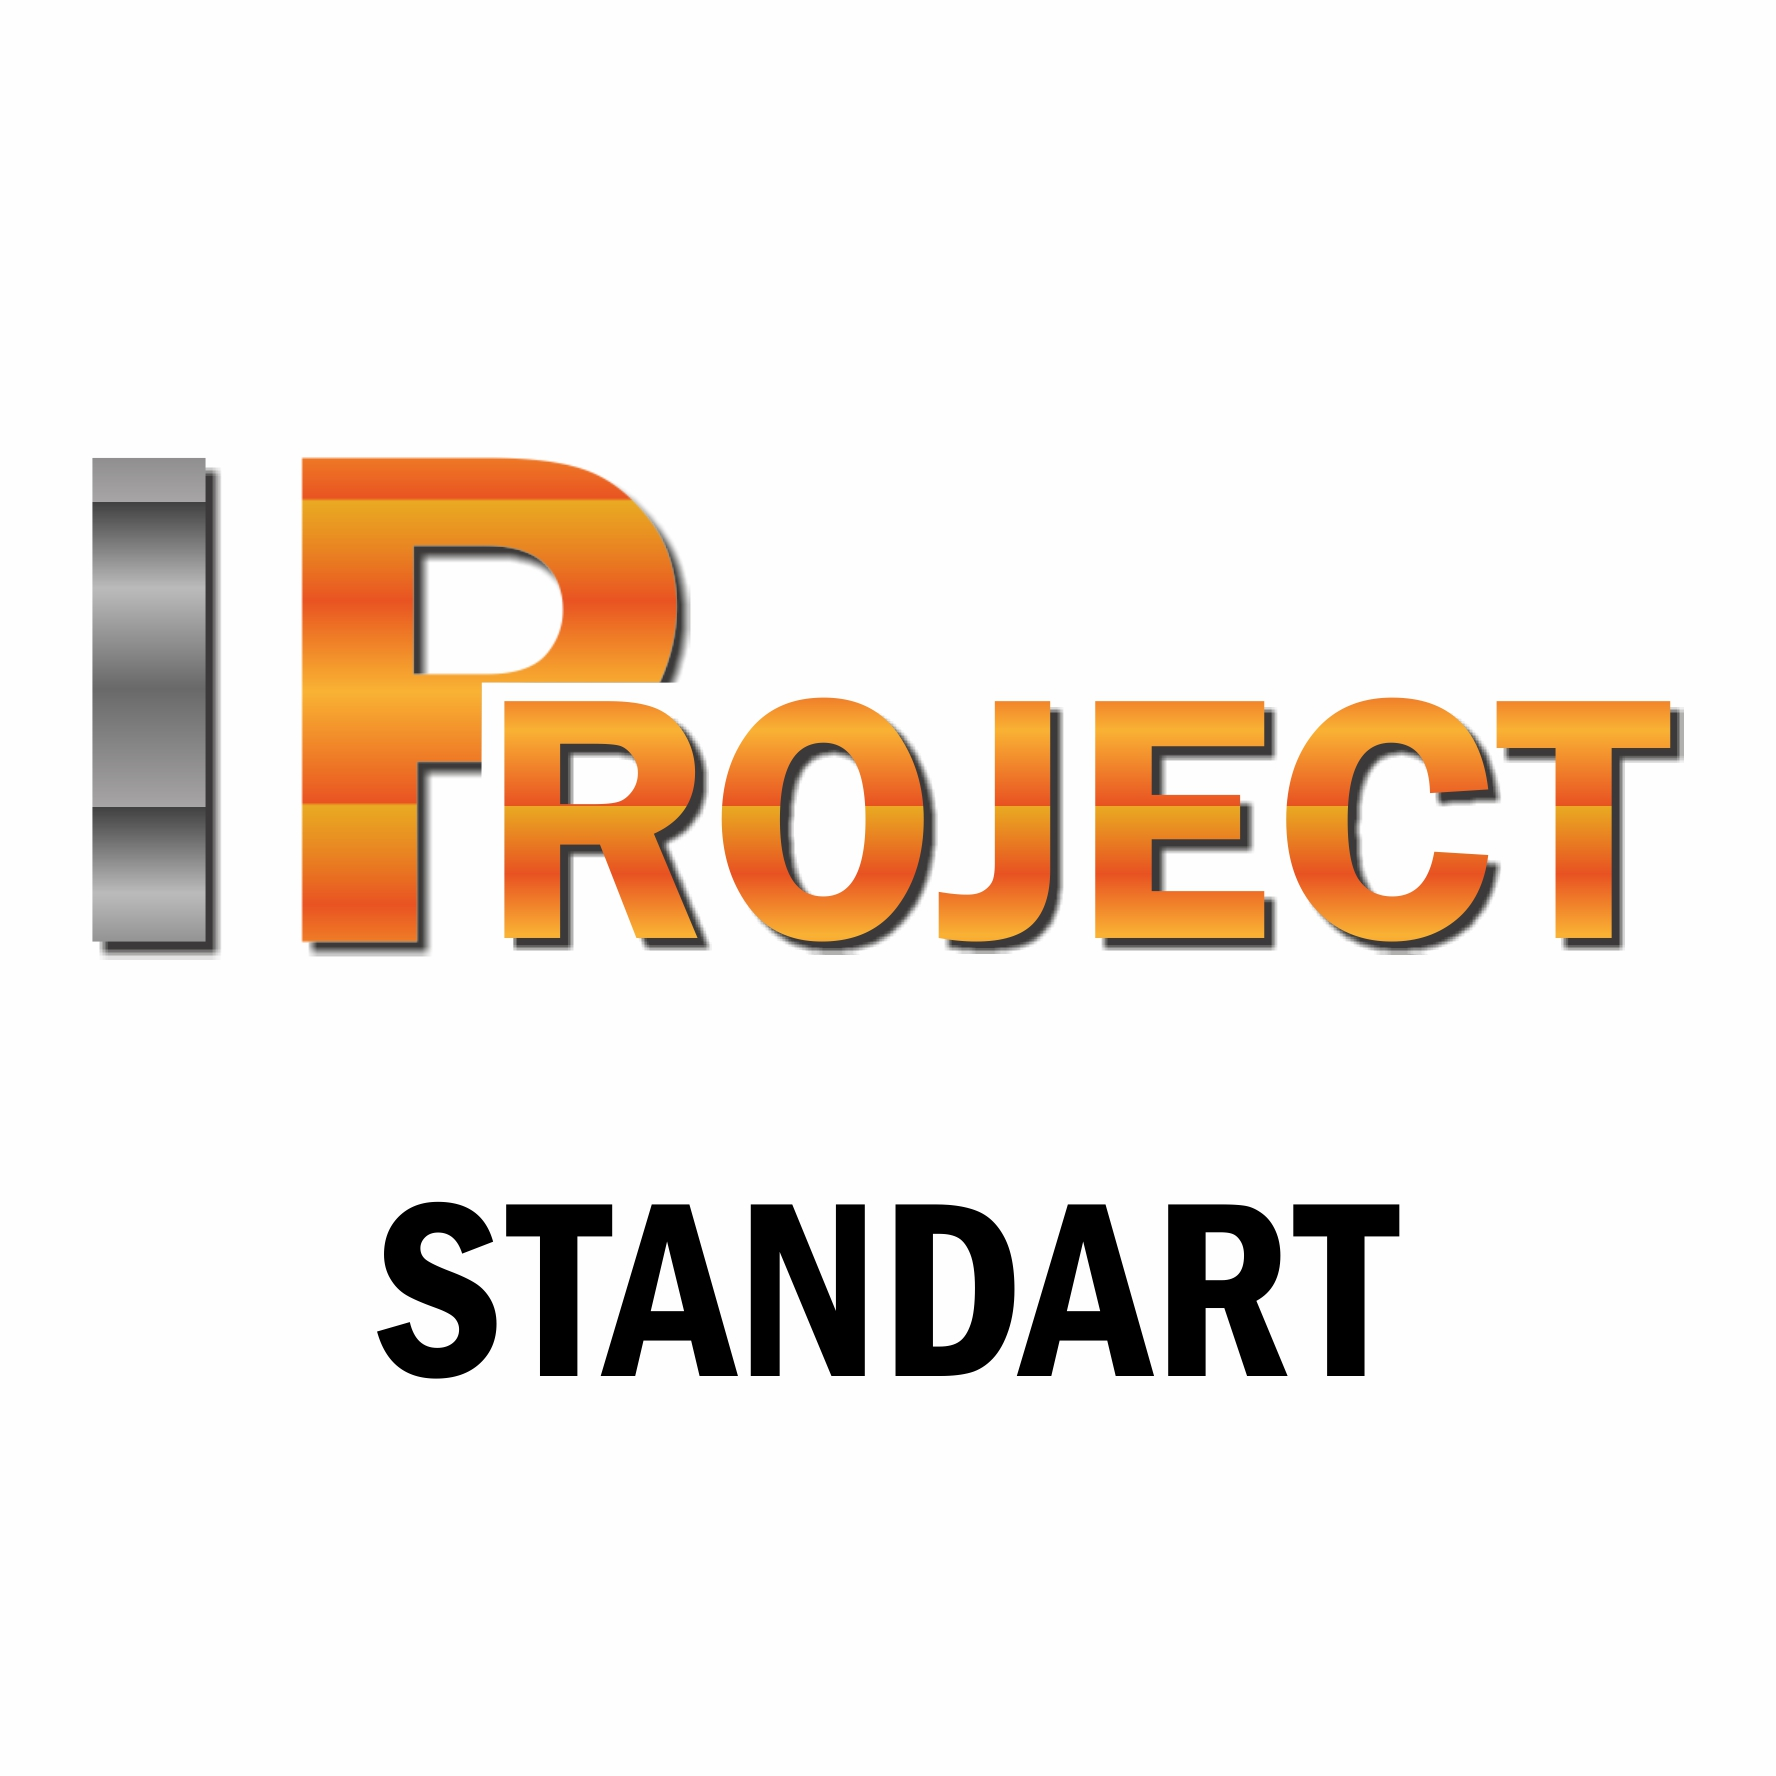 IPROJECT STANDART (Satvision)